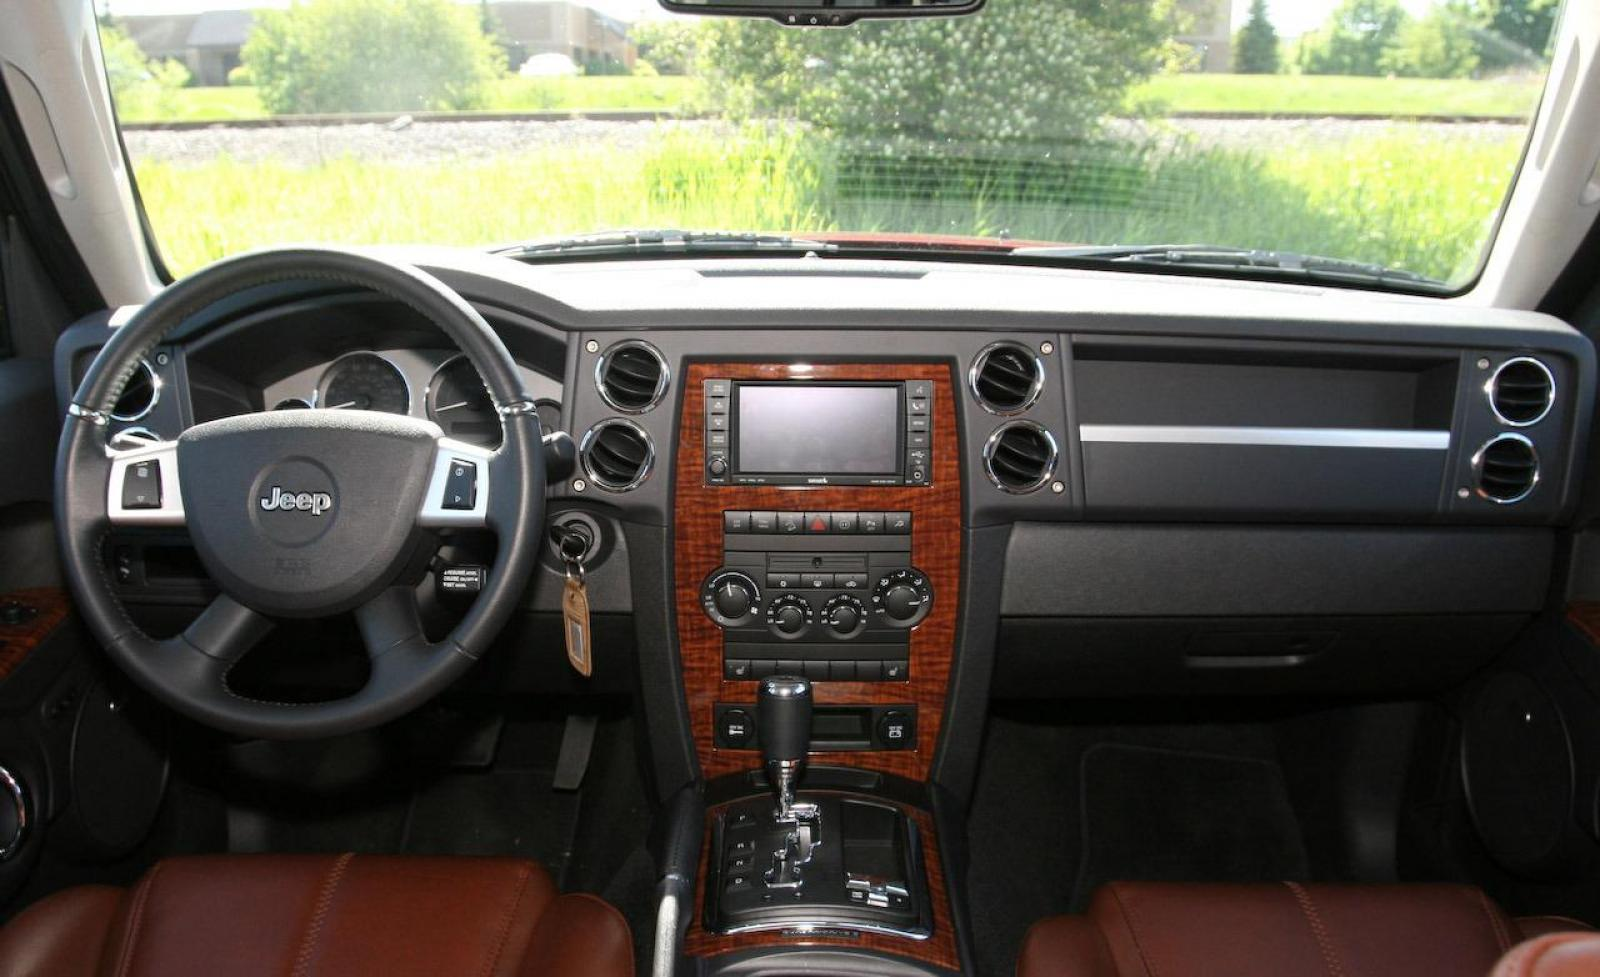 2009 jeep commander information and photos zombiedrive for Jeep commander interior